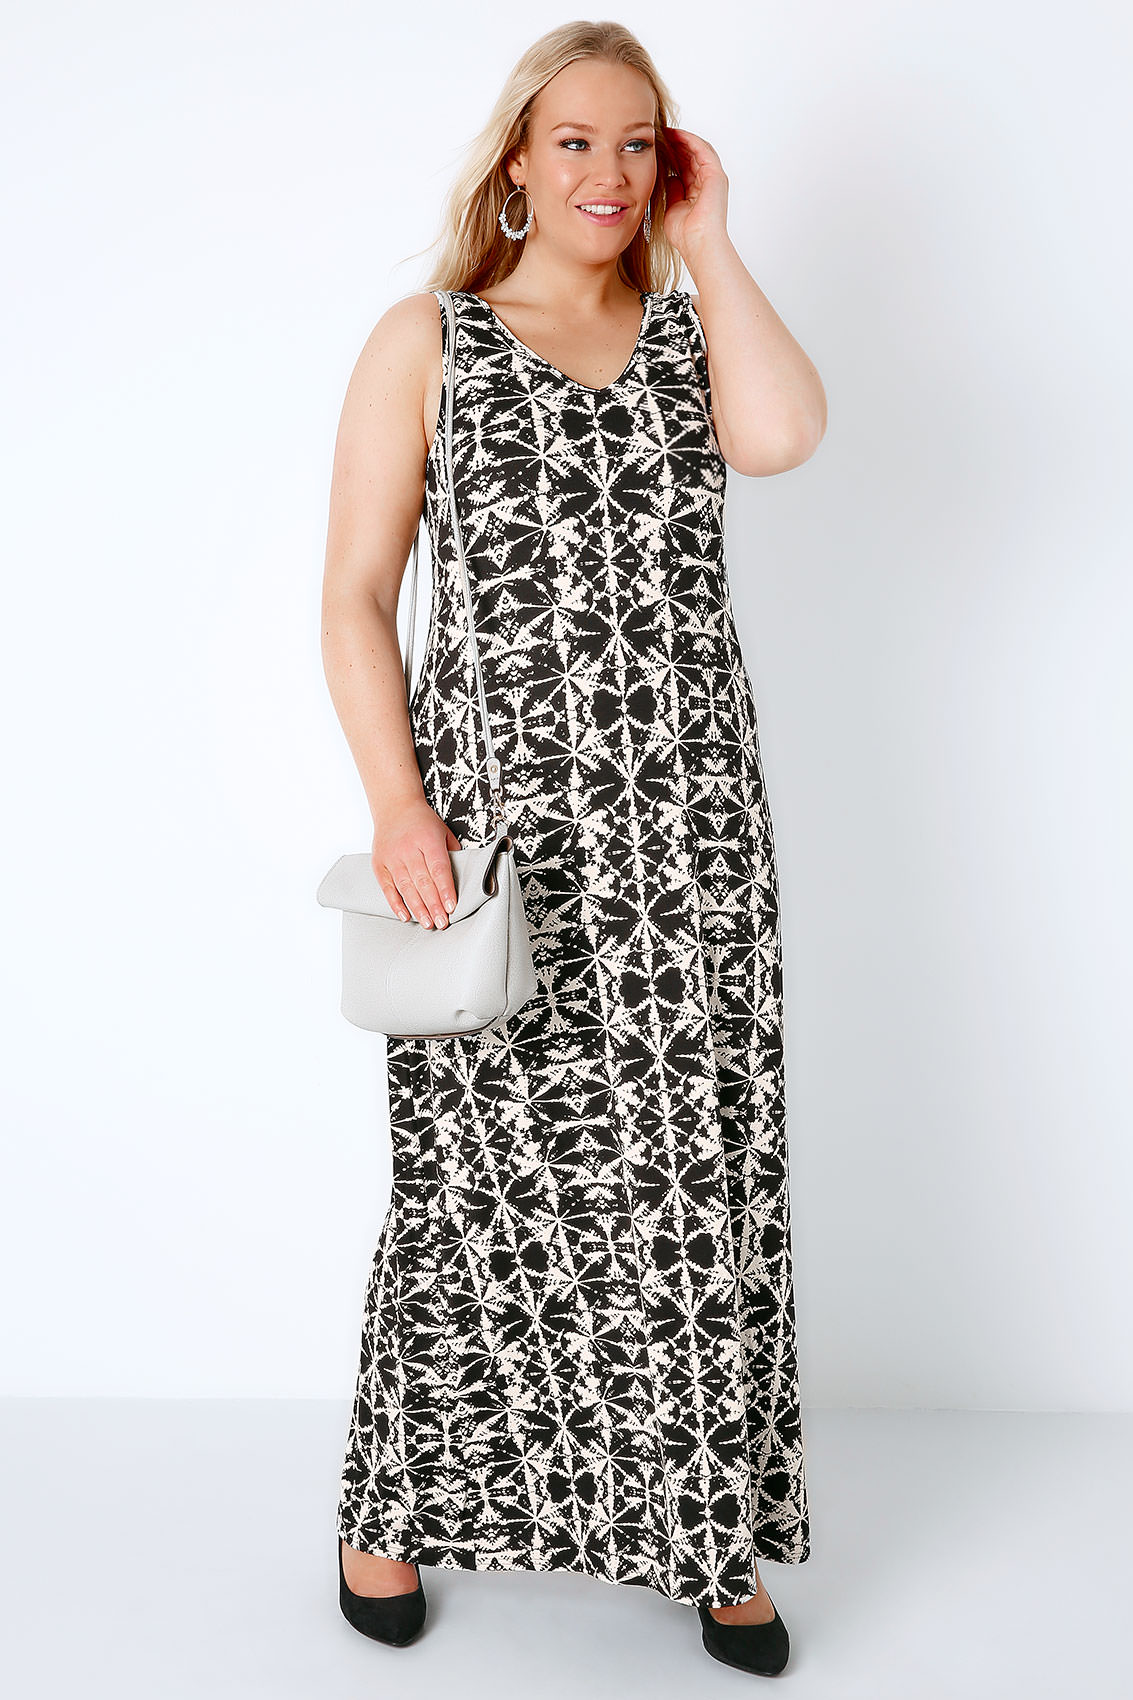 black white tie dye print jersey maxi dress with v neck. Black Bedroom Furniture Sets. Home Design Ideas